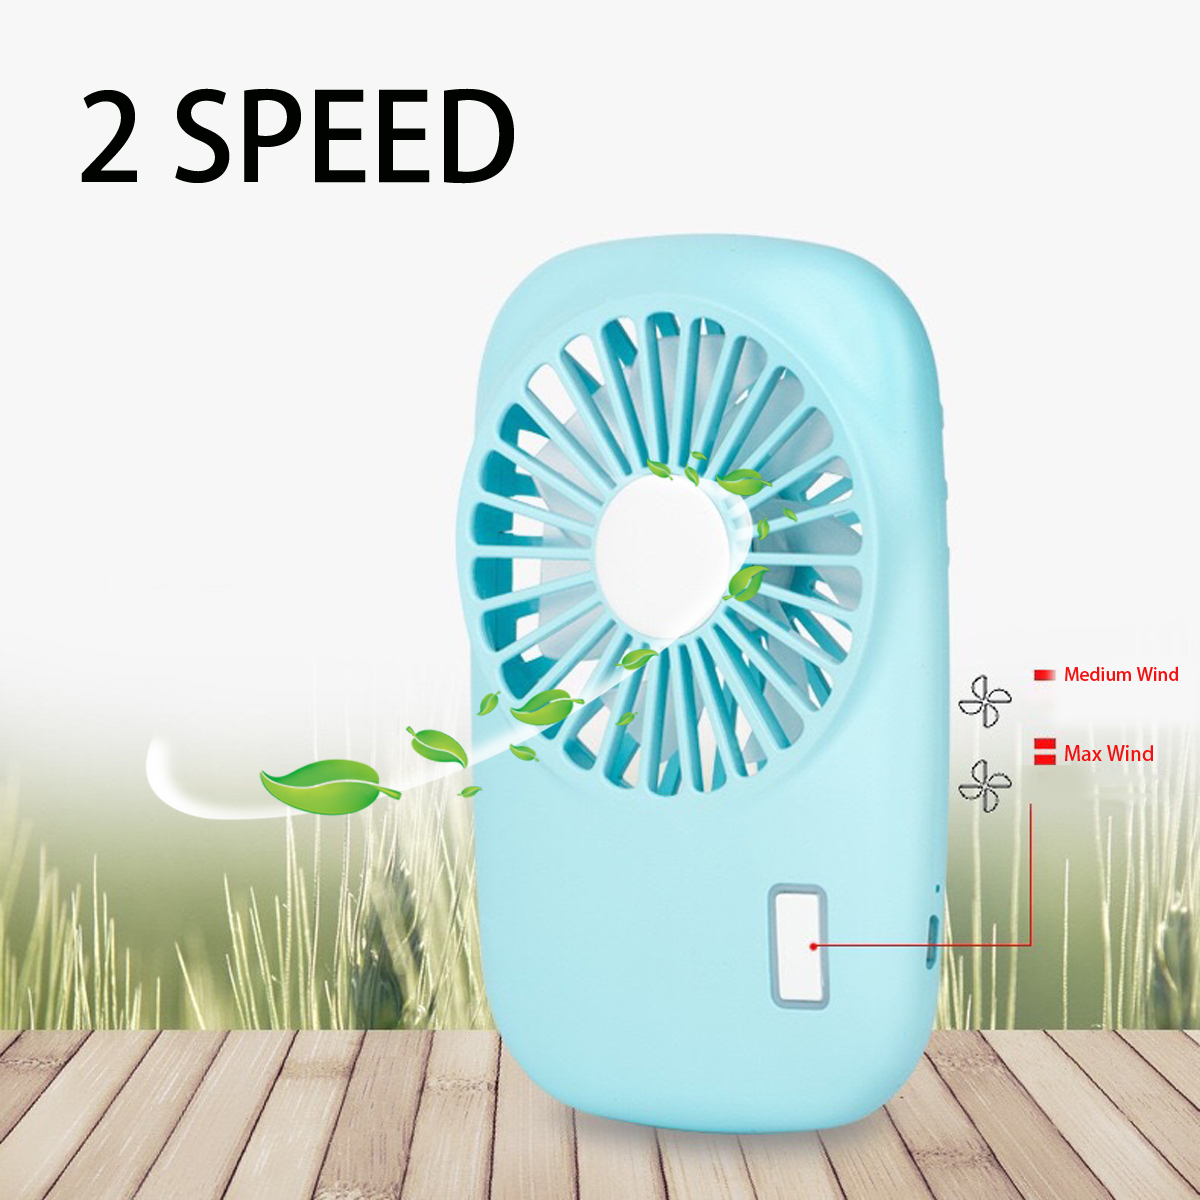 Mini Portable Fan Handheld Air Cooling Fan Summer Cooler Fan Lithium Battery USB Rechargable Fan